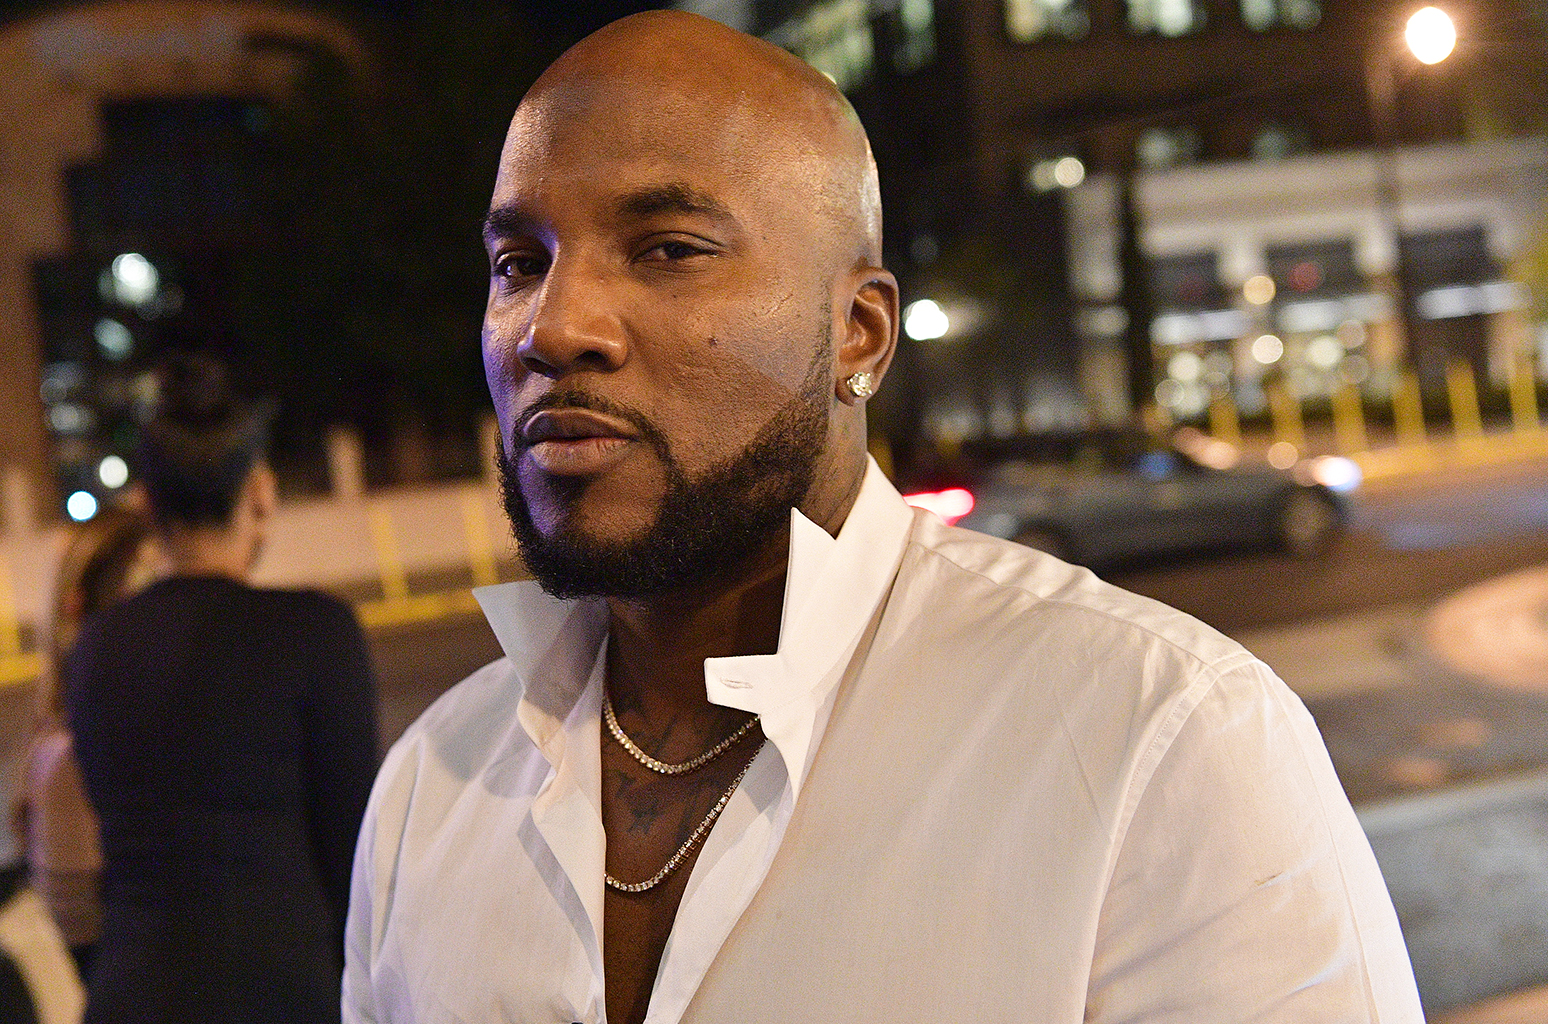 Jeezy Has Been Auditioning for Movie Roles: 'Will Smith, Watch Out!'